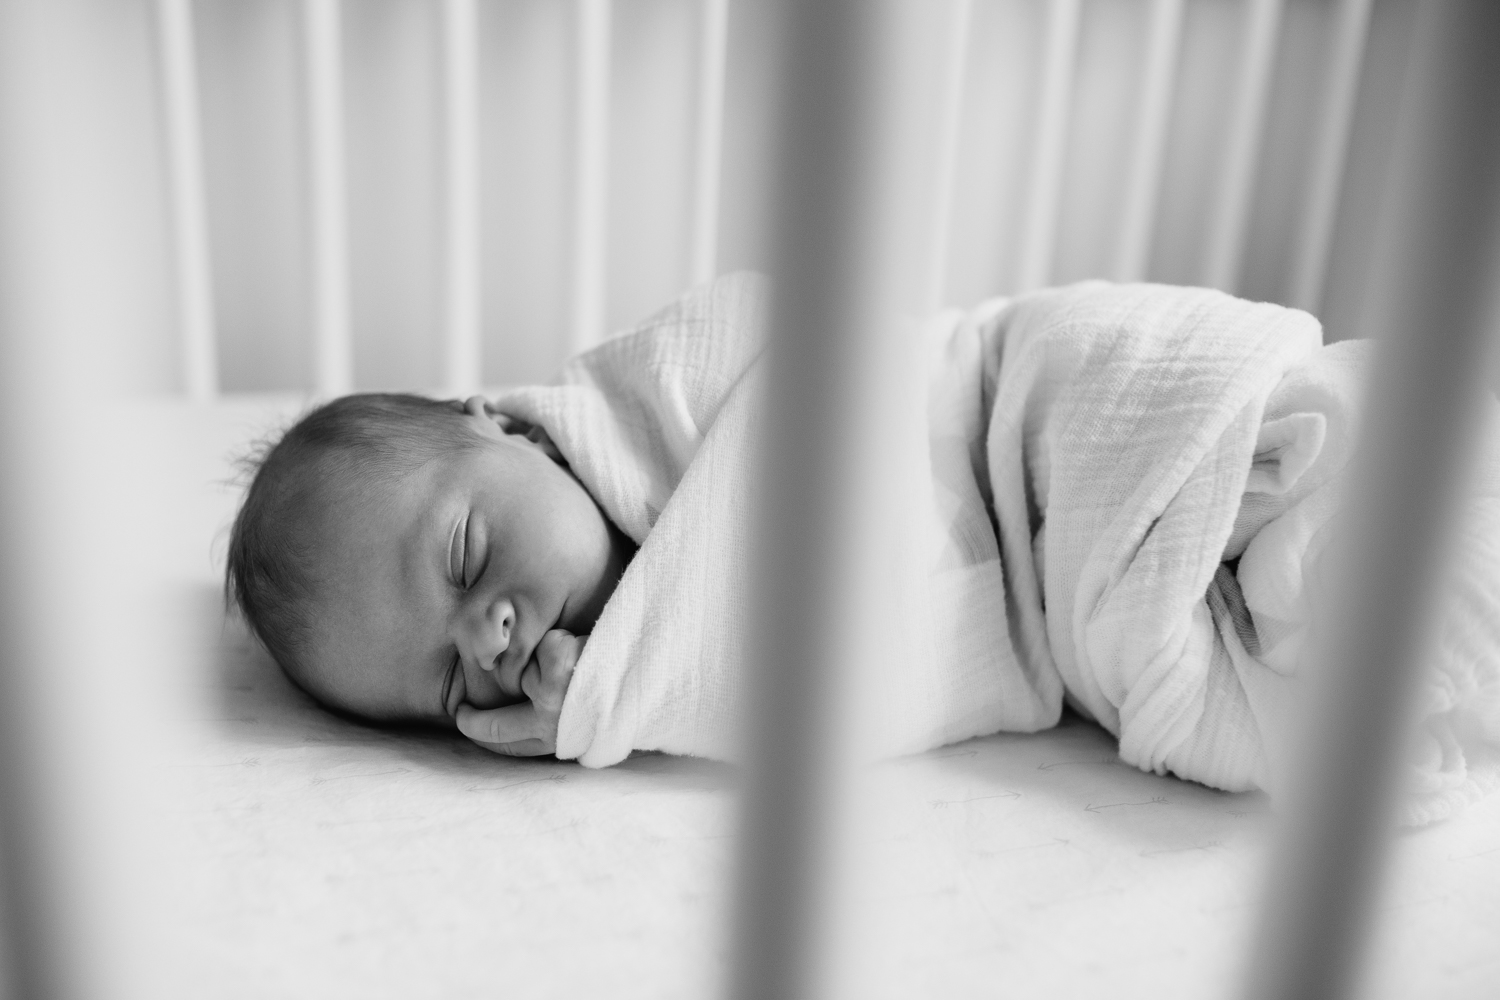 2 week old baby boy in white swaddle with grey stars, lying asleep in white crib with wood trim in nursery, chewing on fingers - Barrie In-Home Photos